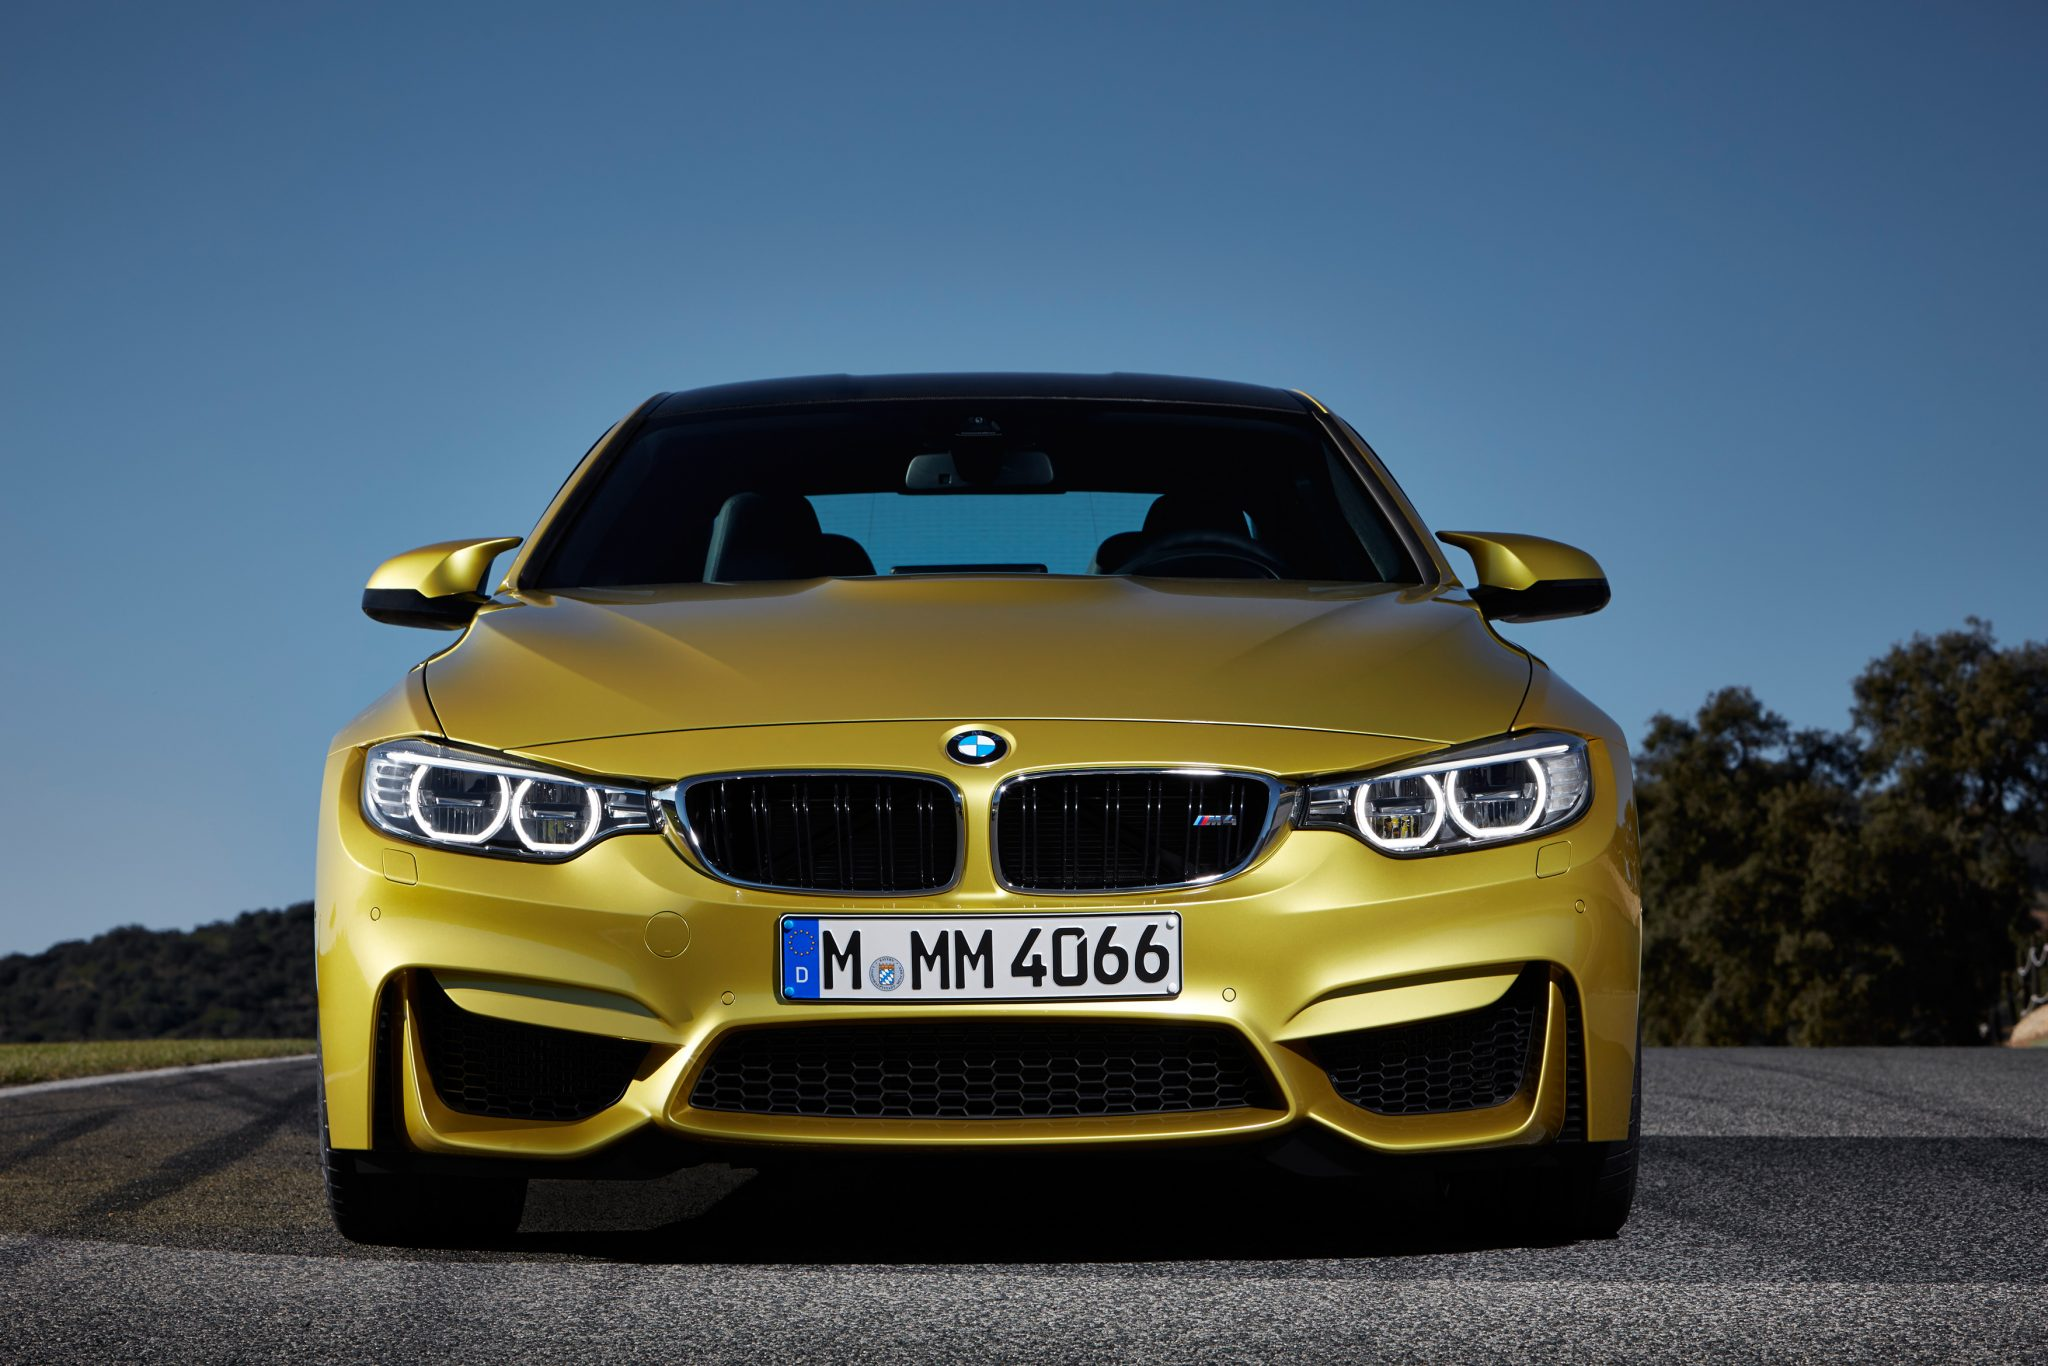 BMW M Coupe Front View The News Wheel - 2013 bmw m4